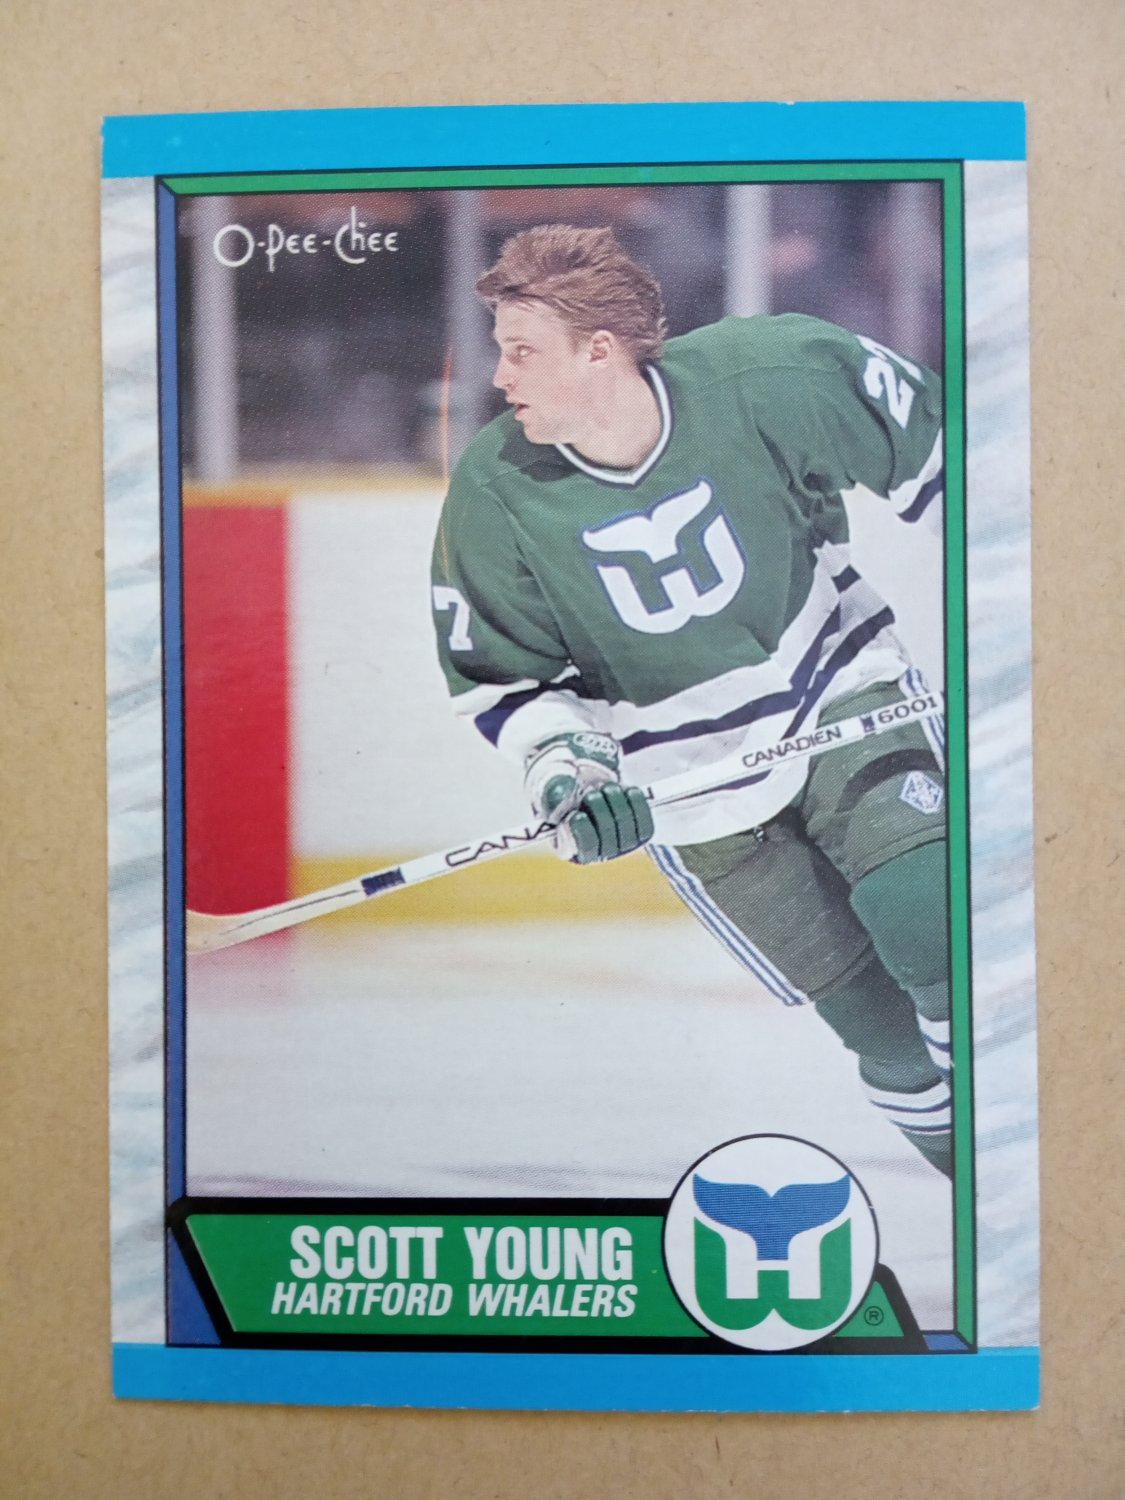 1989-90 O-Pee-Chee #209 Scott Young Hartford Whalers Rookie